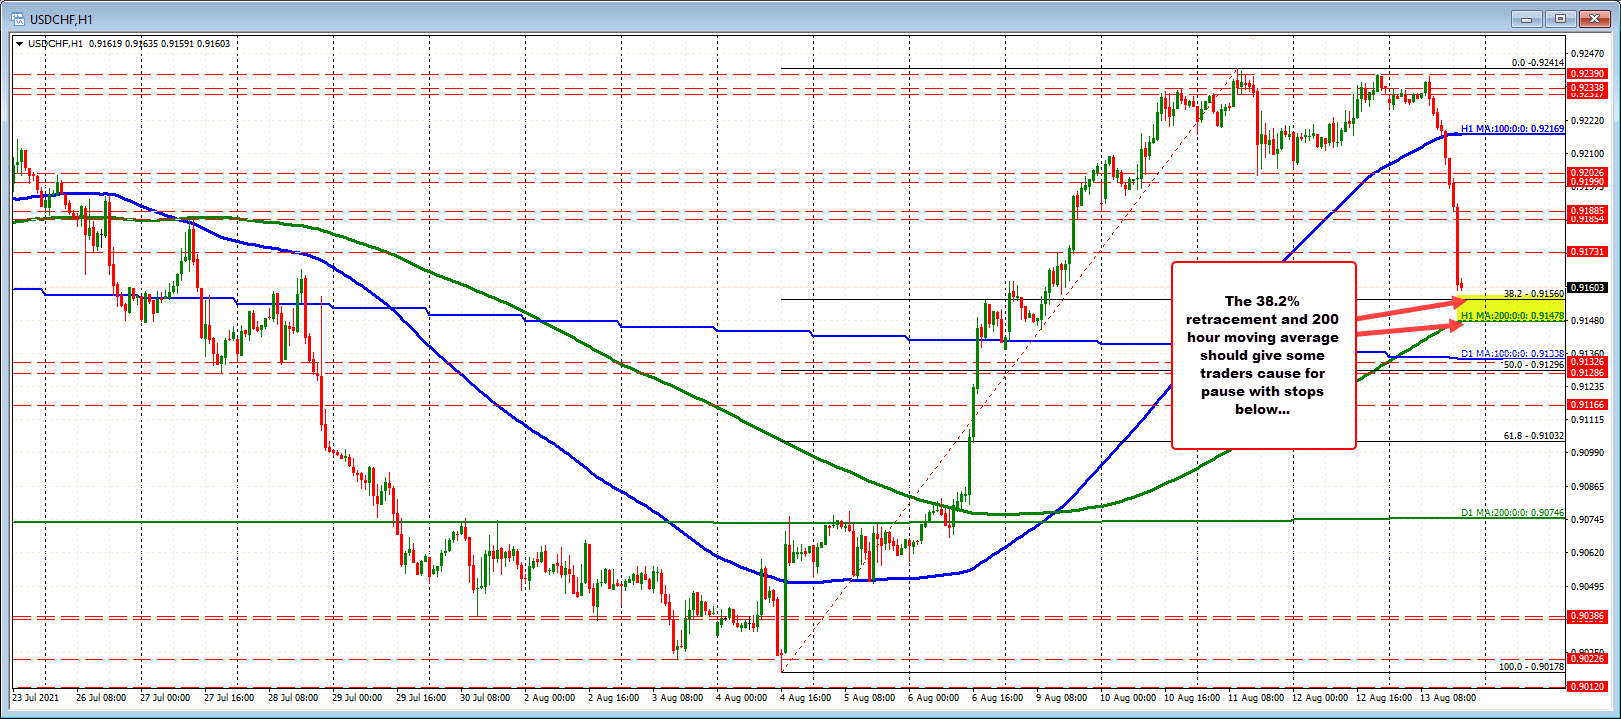 The USDCHF is moving towards support, which is defined by a 38.2% retracement and rises to a 200-hour moving average